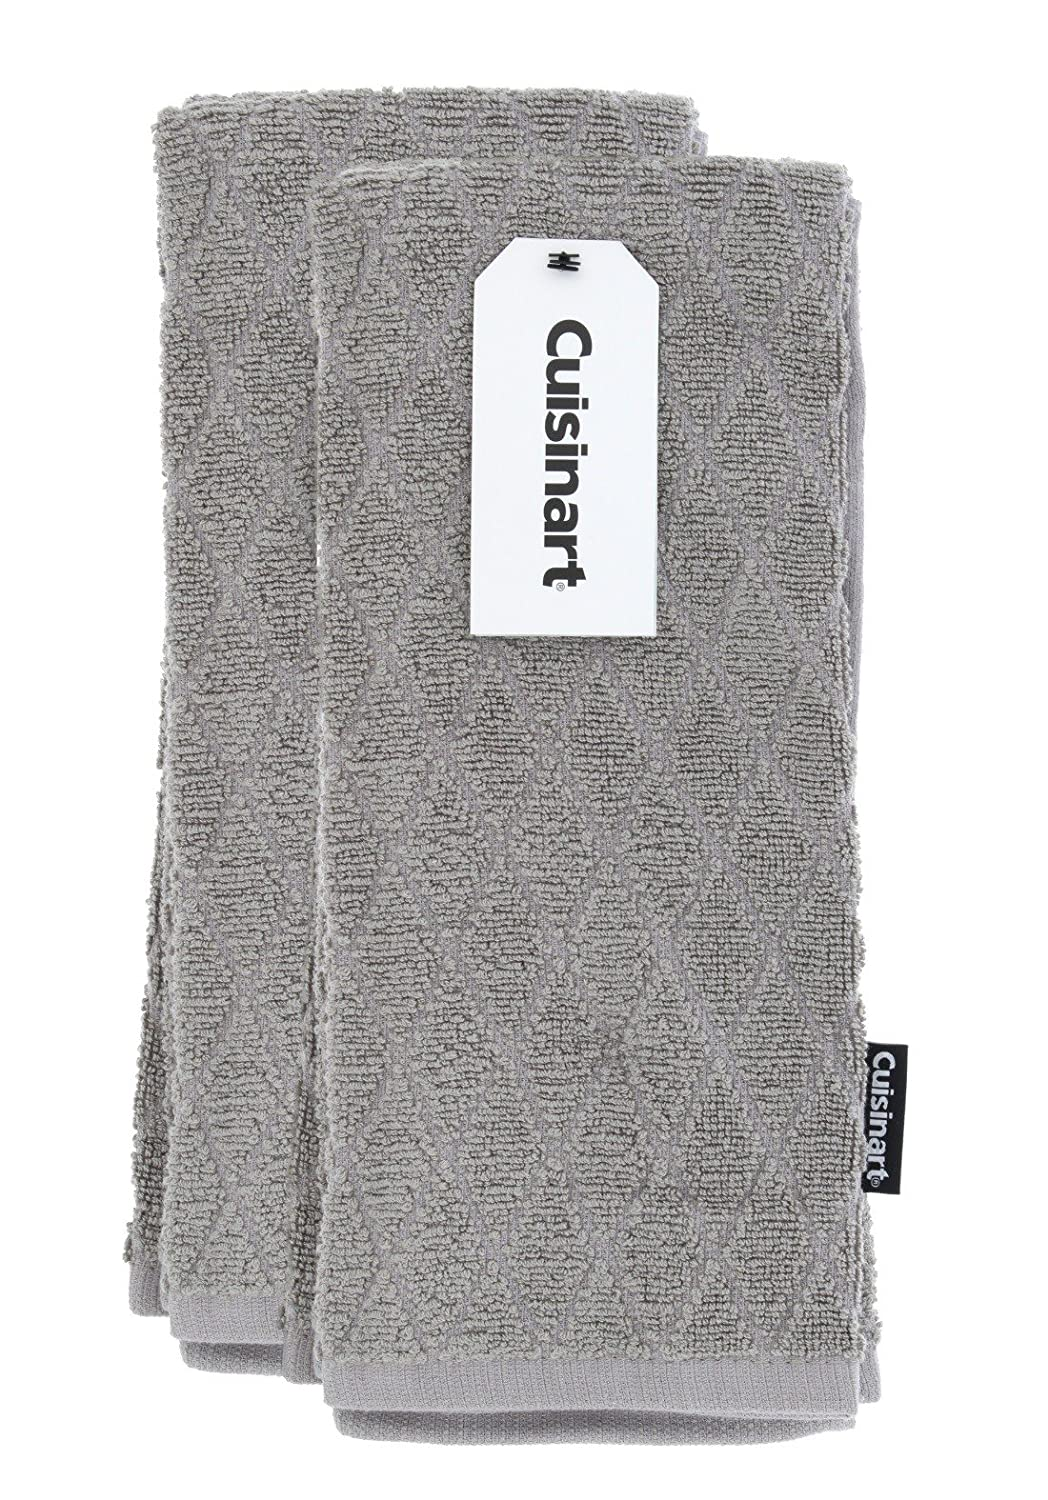 Cuisinart Bamboo Dish Towel Set-Kitchen and Hand Towels for Drying Dishes/Hands - Absorbent, Soft and Anti-Microbial-Premium Bamboo/Cotton Blend, 2 Pack, 16 x 26, Drizzle Grey, Diamond Design